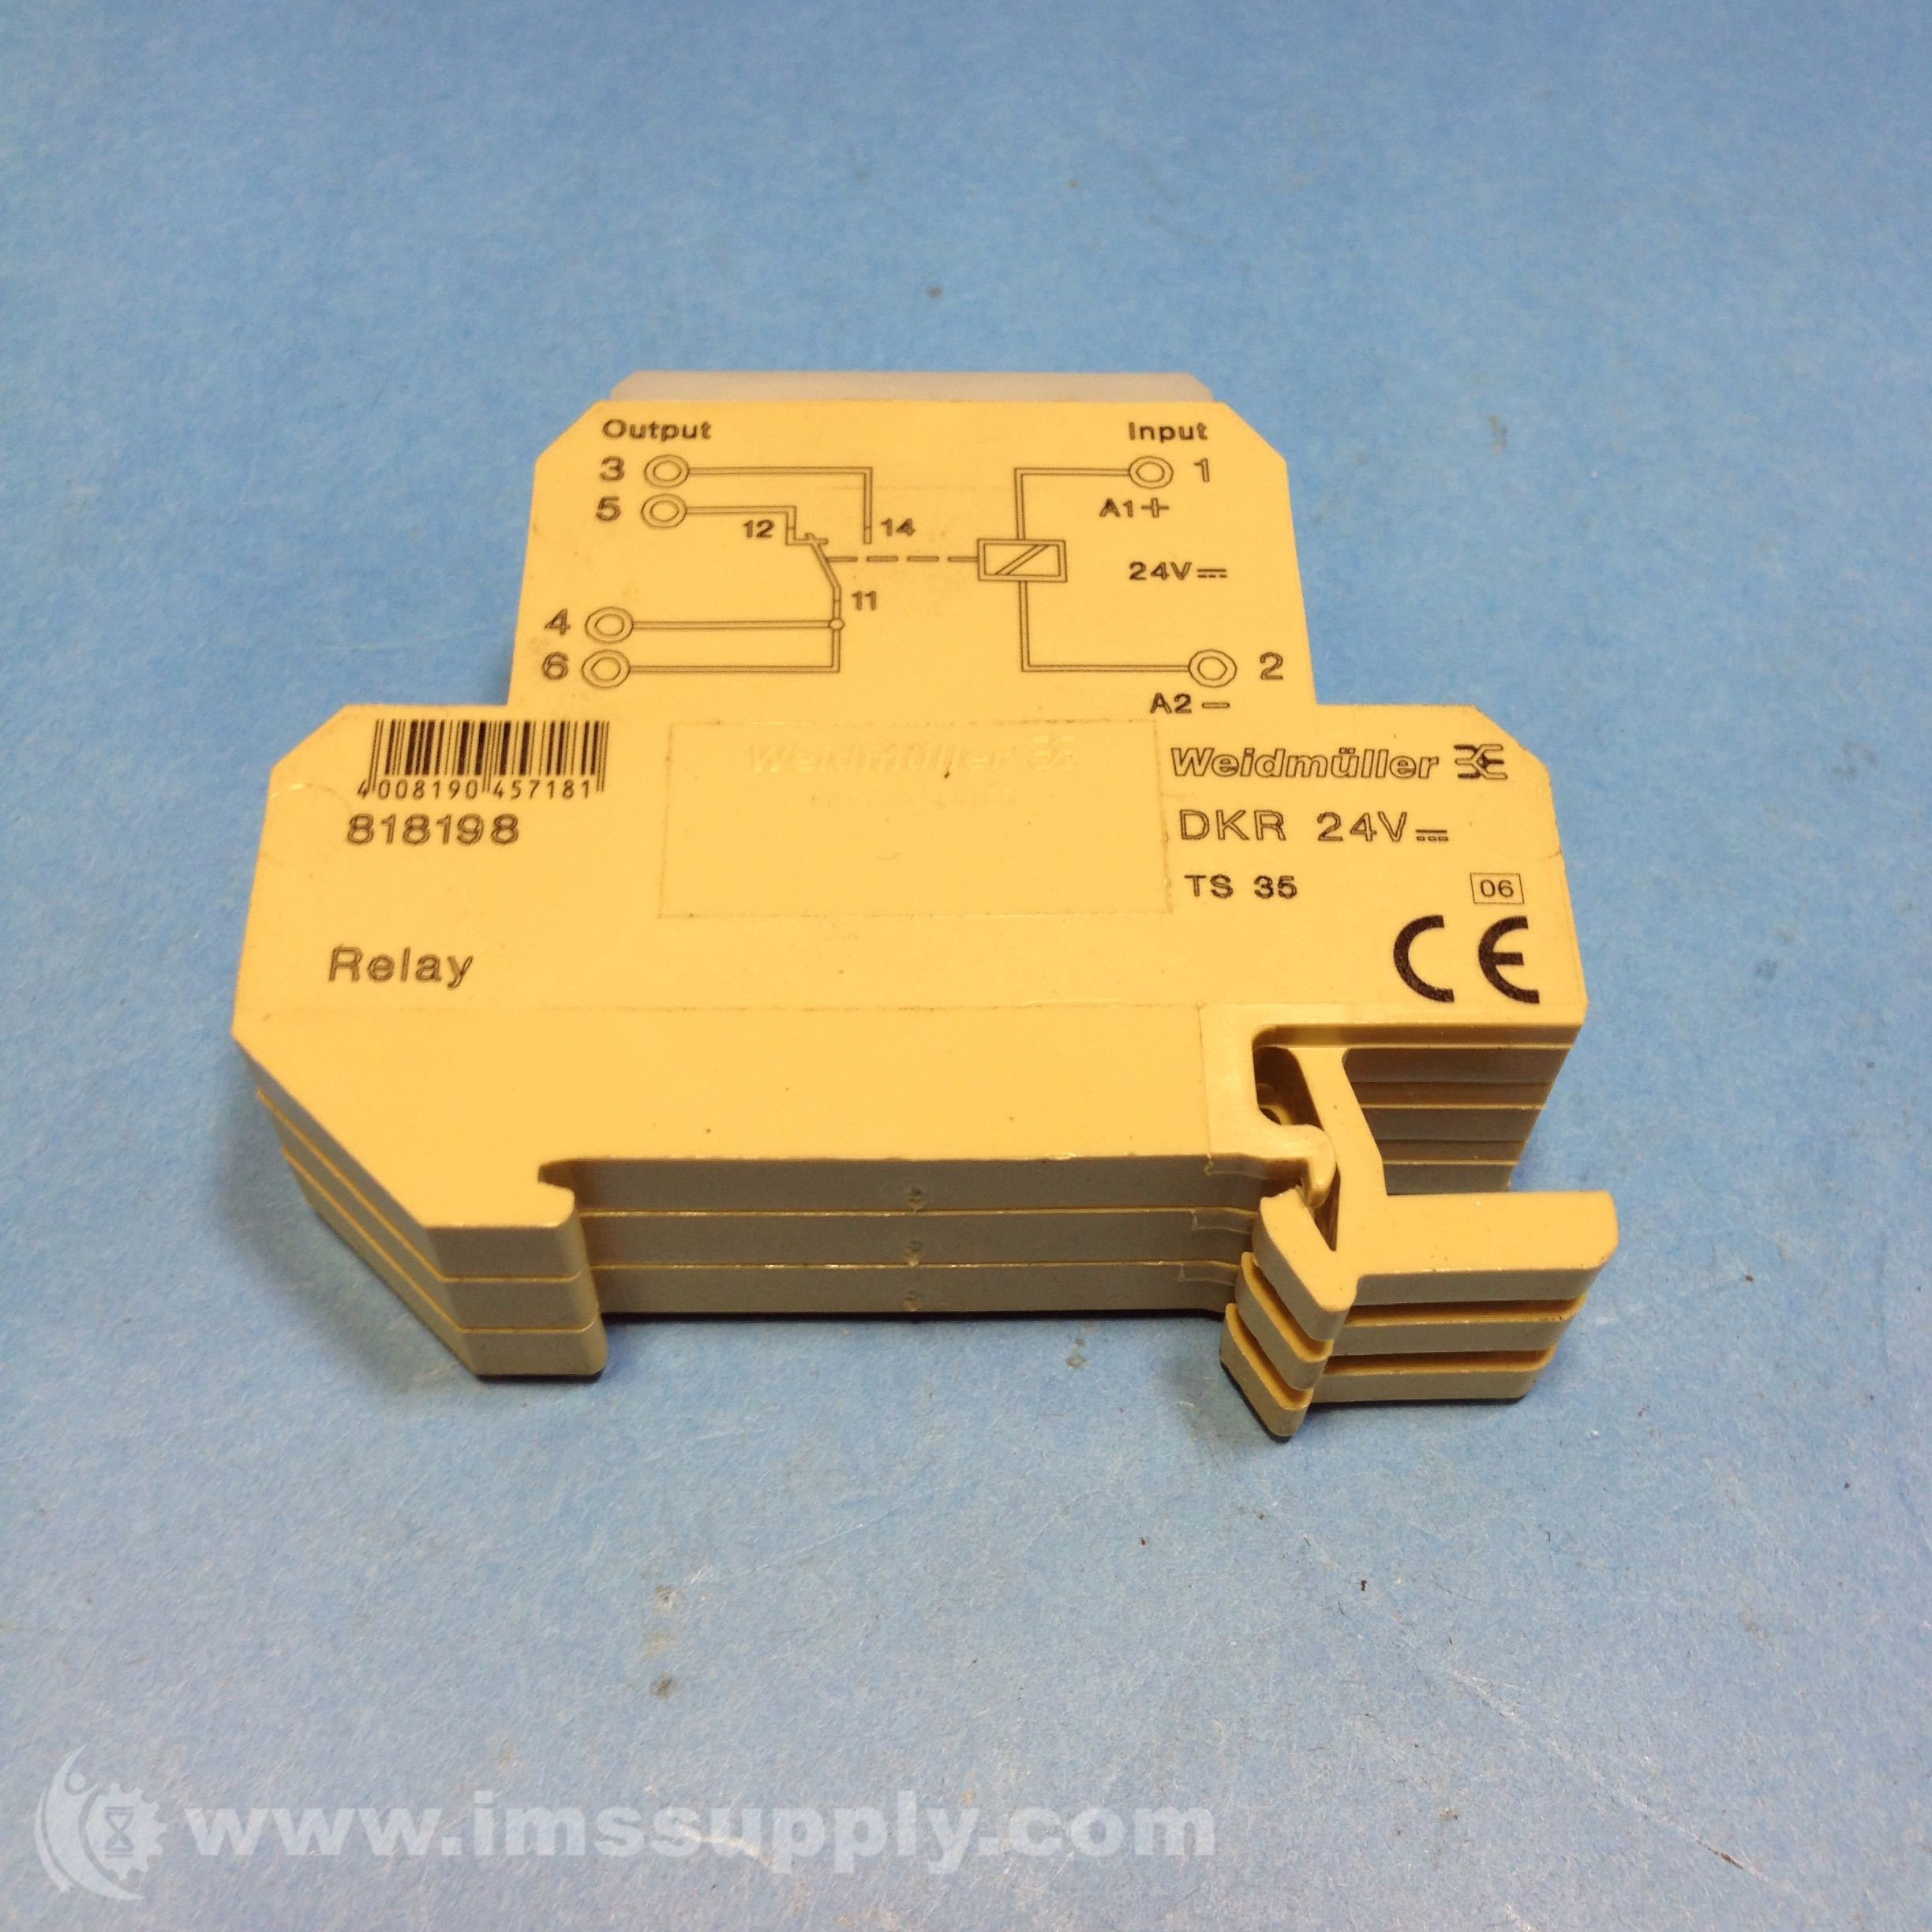 Weidmuller 818198 Terminal Relay IMS Supply